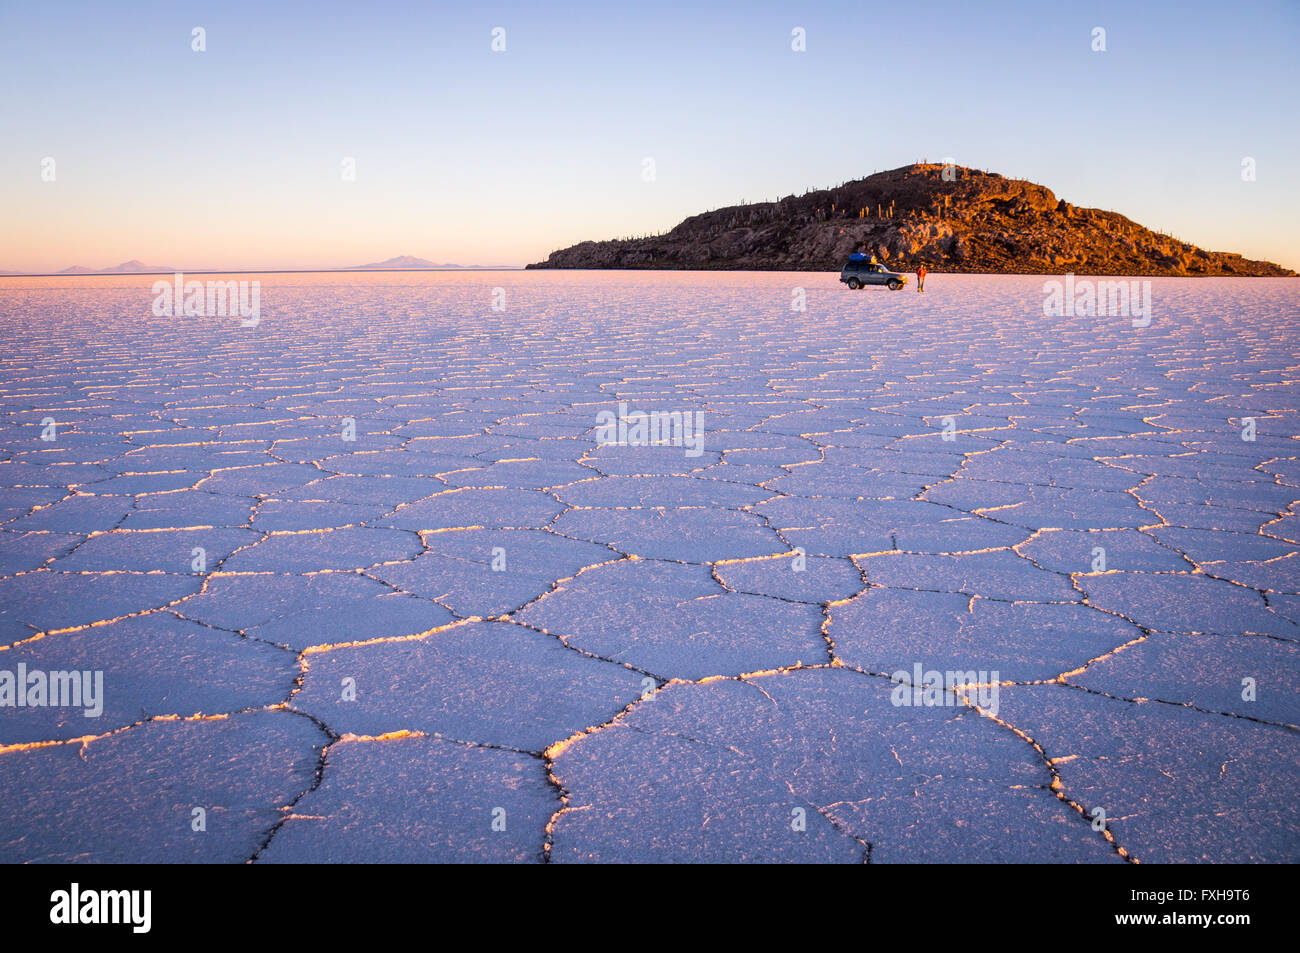 Salar Uyuni, BOLIVIA in September 2015: The sun rises over worlds largest salt lake Salar de Uyuni. Southwestern - Stock Image